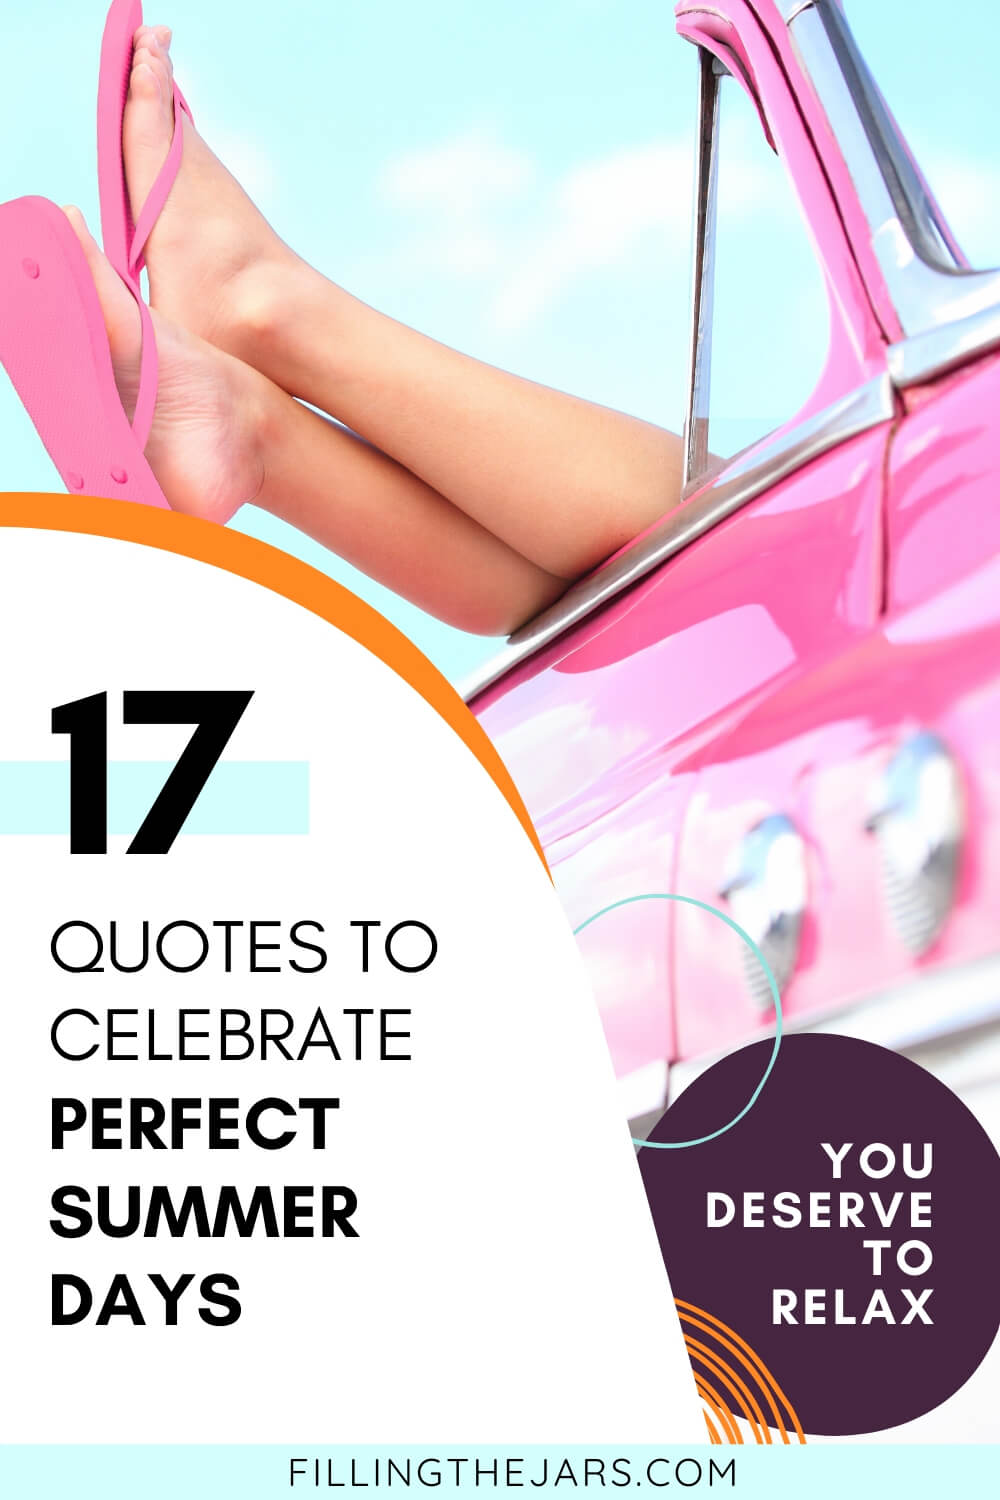 woman in flip flops with legs hanging out of vintage pink car and text overlay quotes to celebrate perfect summer days